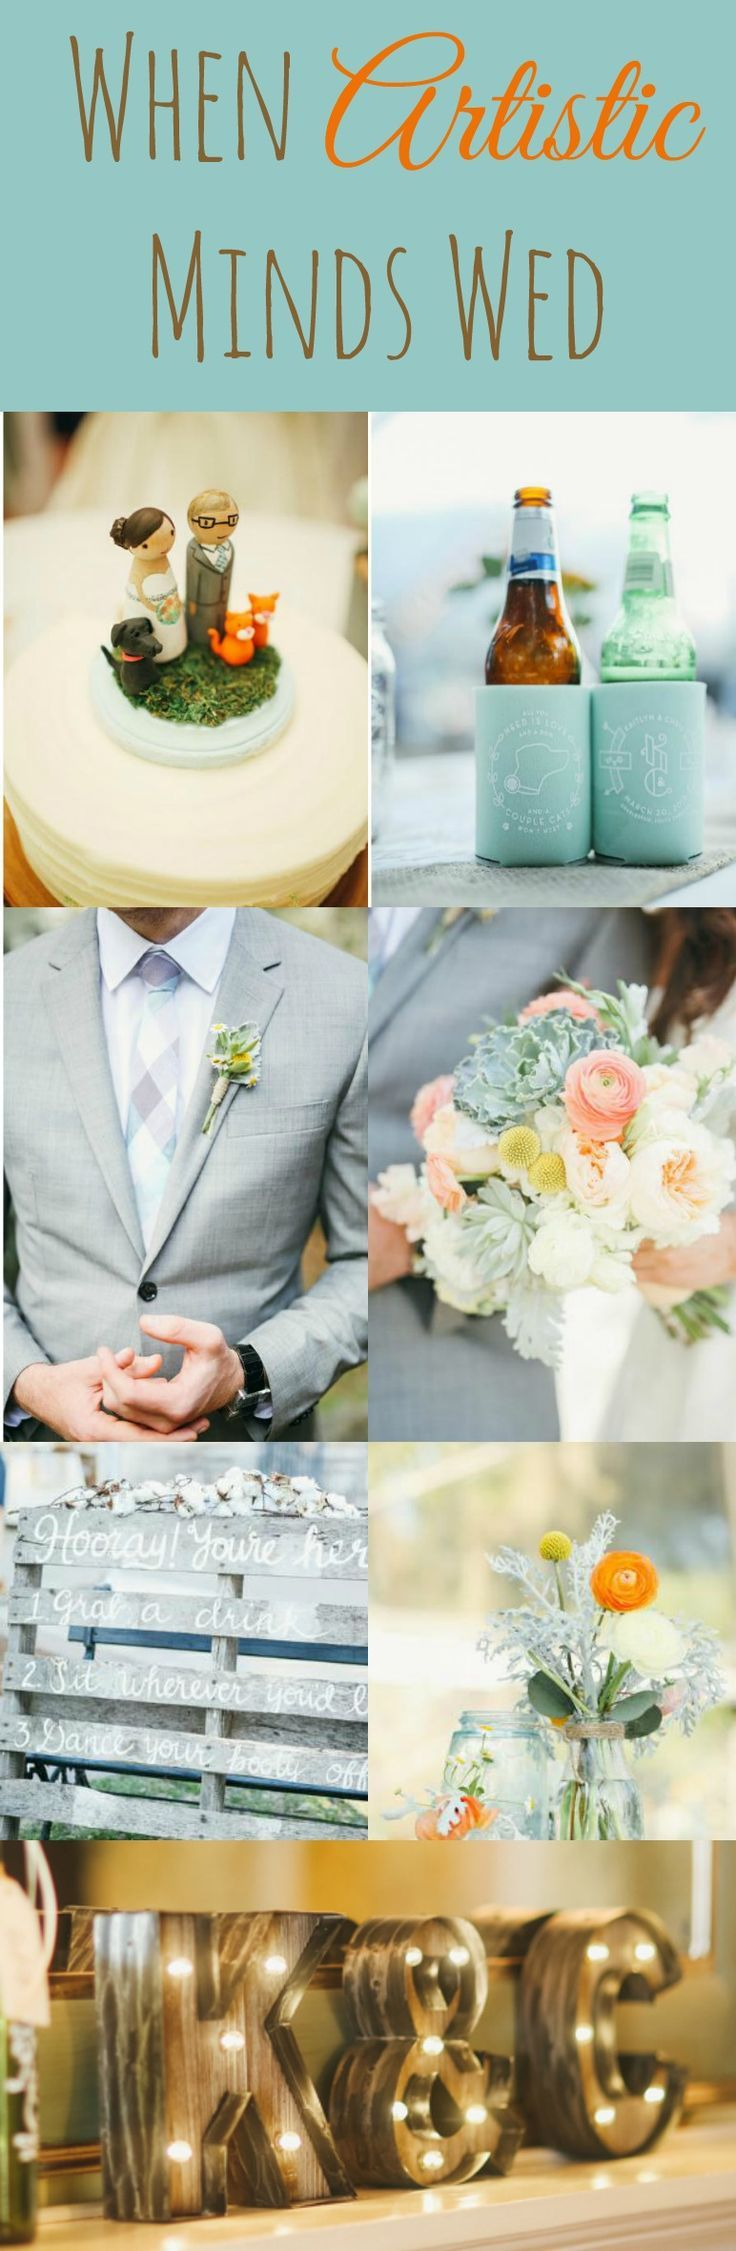 When artistic minds wed rustic outdoor wedding and weddings